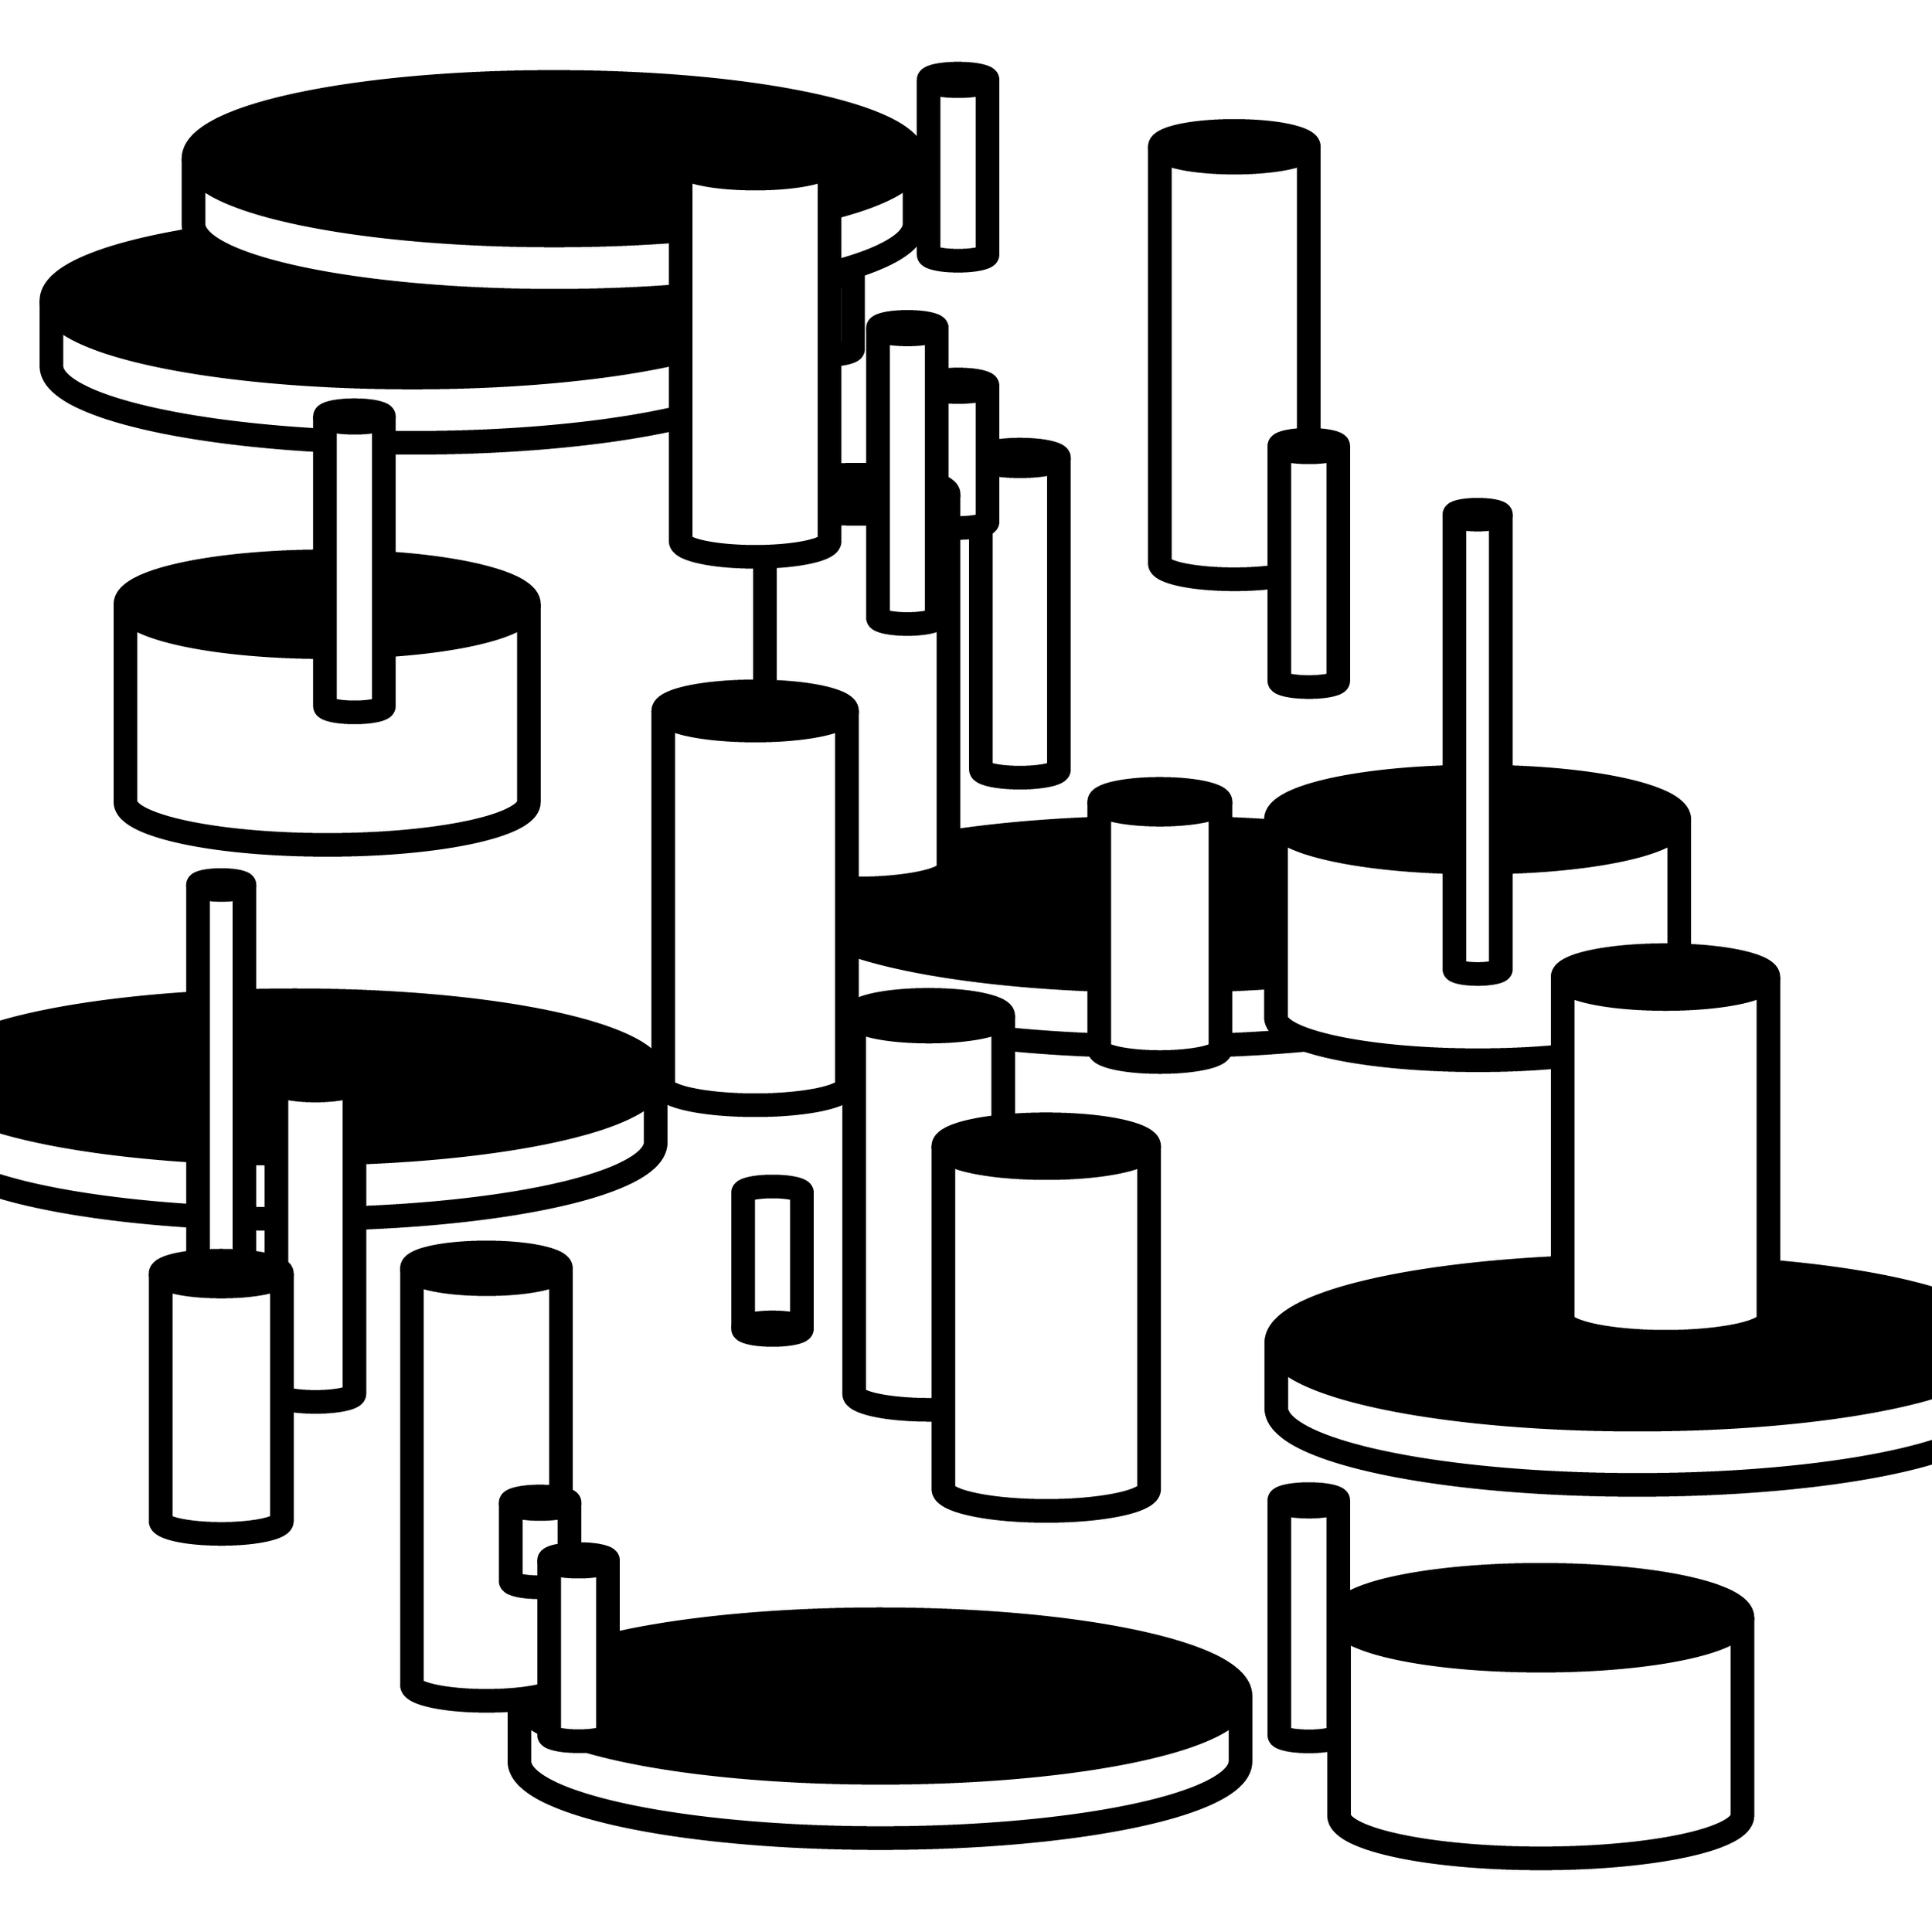 Cylindrical Factory-02.png